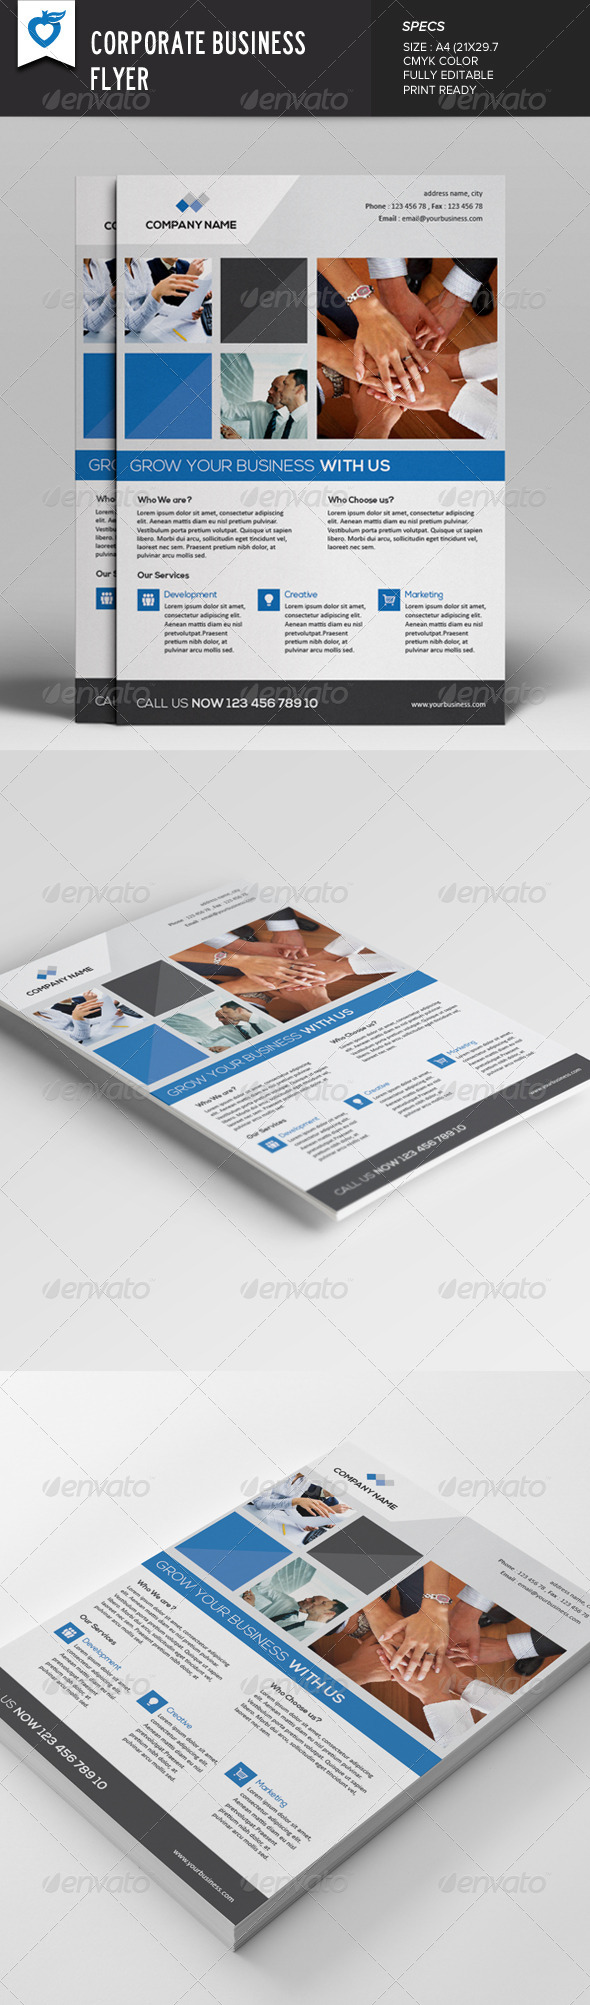 GraphicRiver Corporate Business Flyer v2 7794045